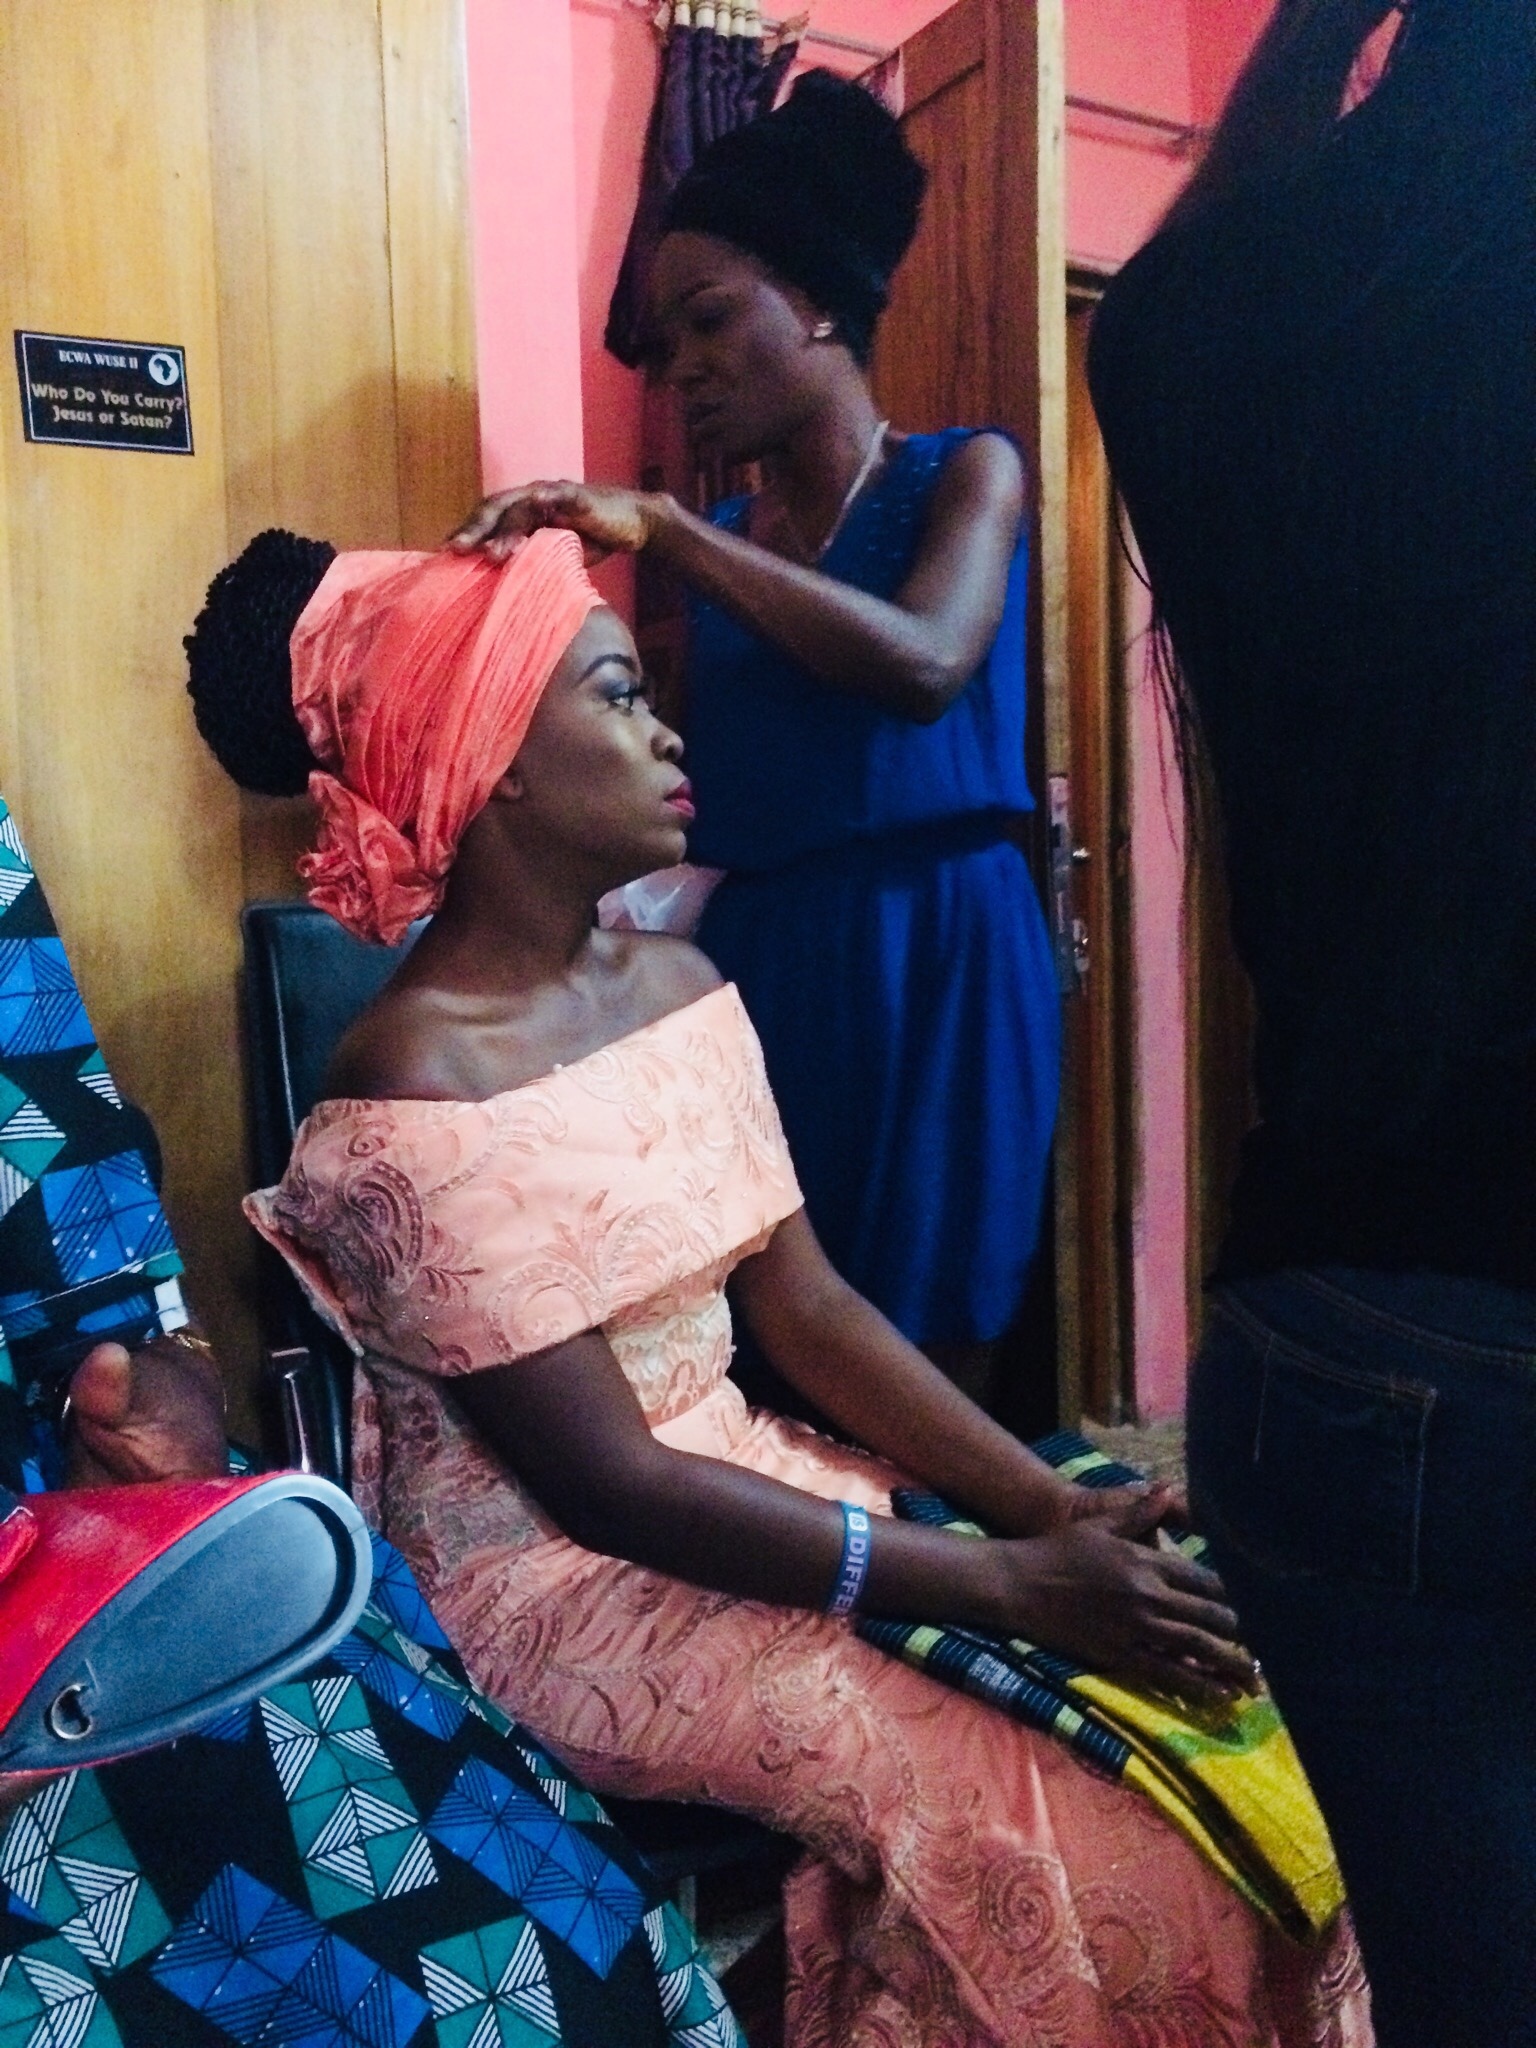 The bride's Sister: Uyo Deborah